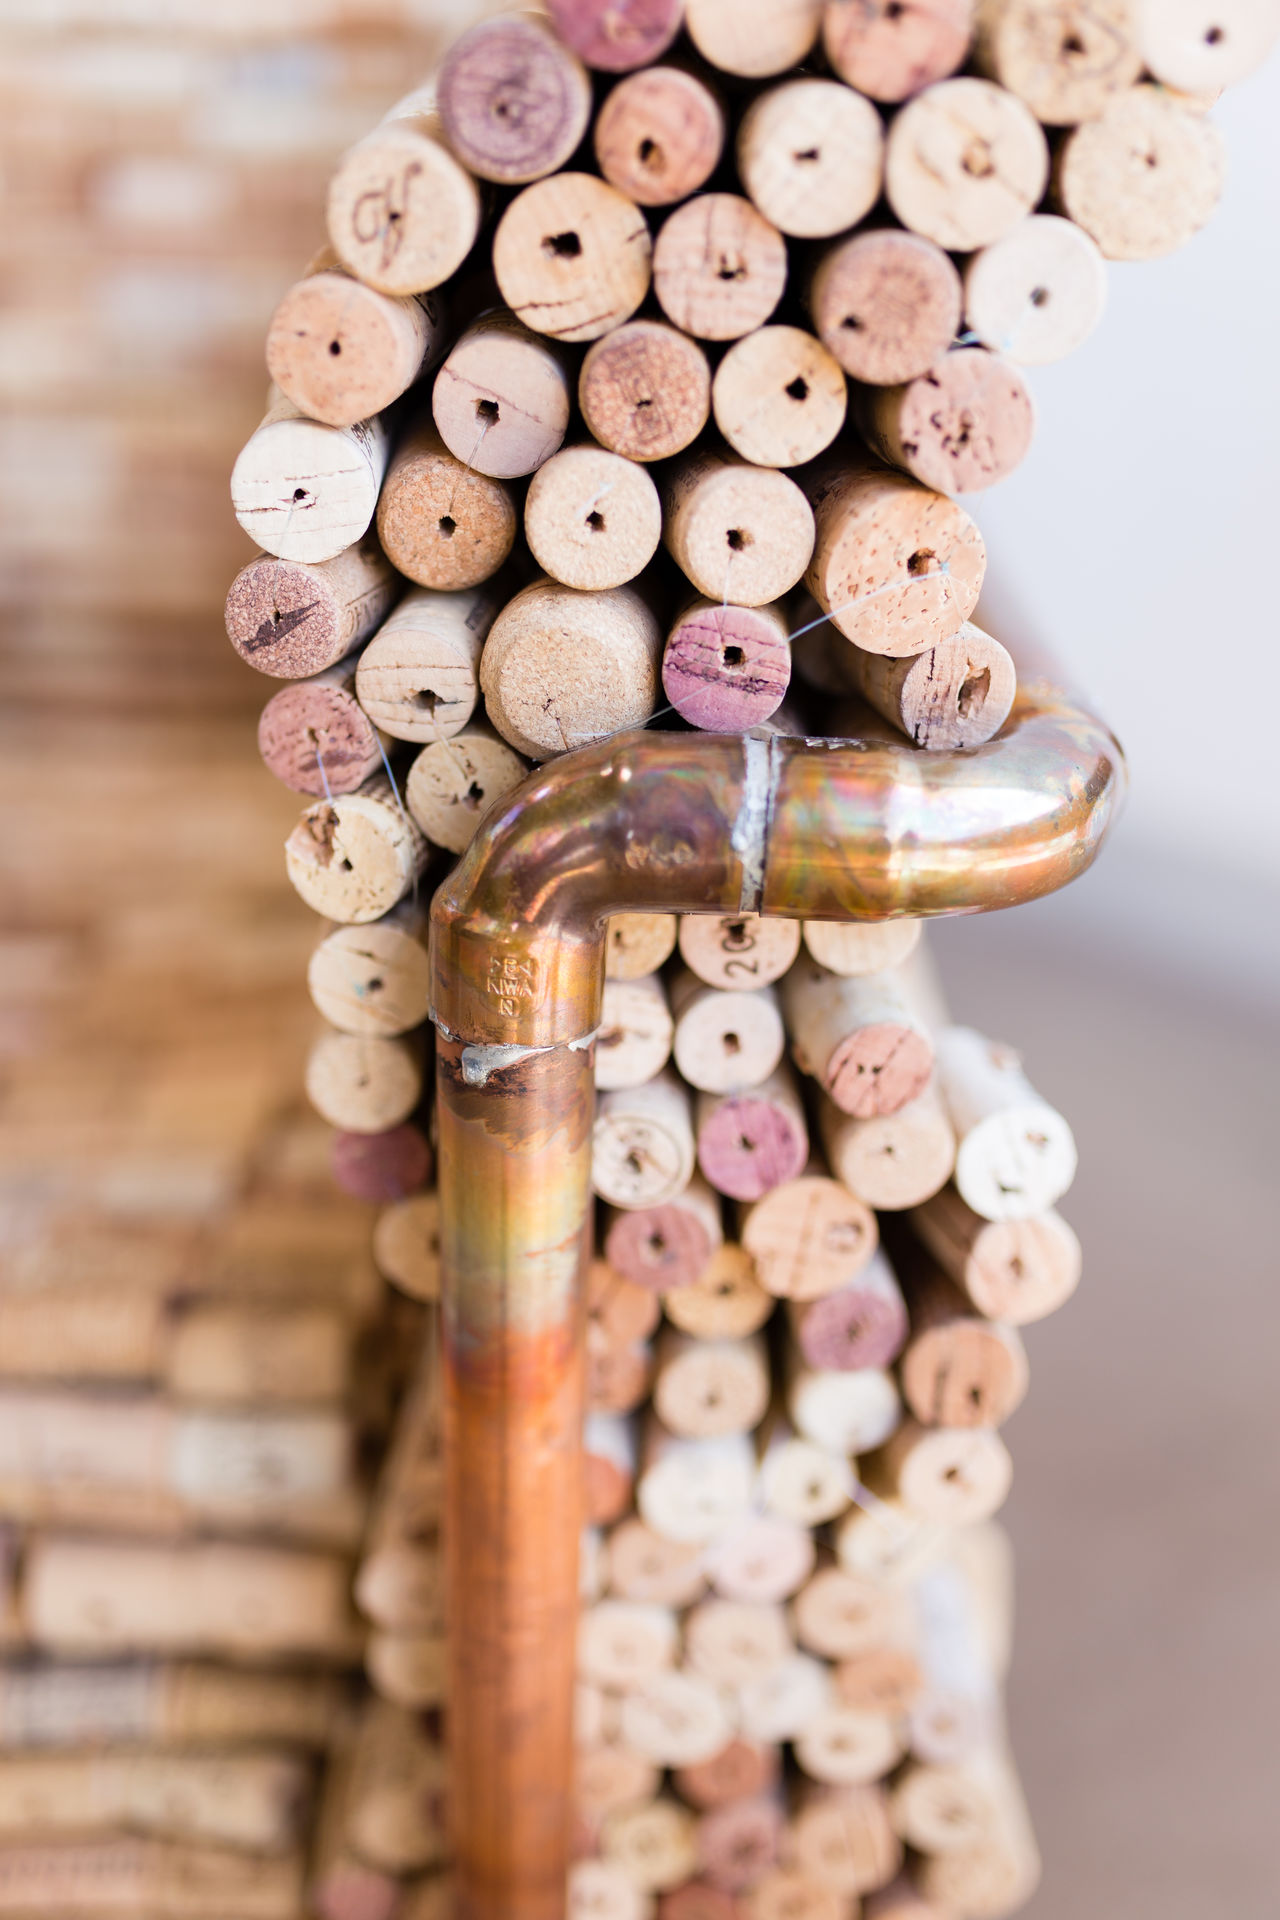 Copper and cork, Modern Chair design. Abundance Chair Chairs Close-up Copper  Copper Art Cork Cork - Stopper Design Furniture Indoors  Natural No People Stack Wine Wine Cork Wine Moments Wood - Material